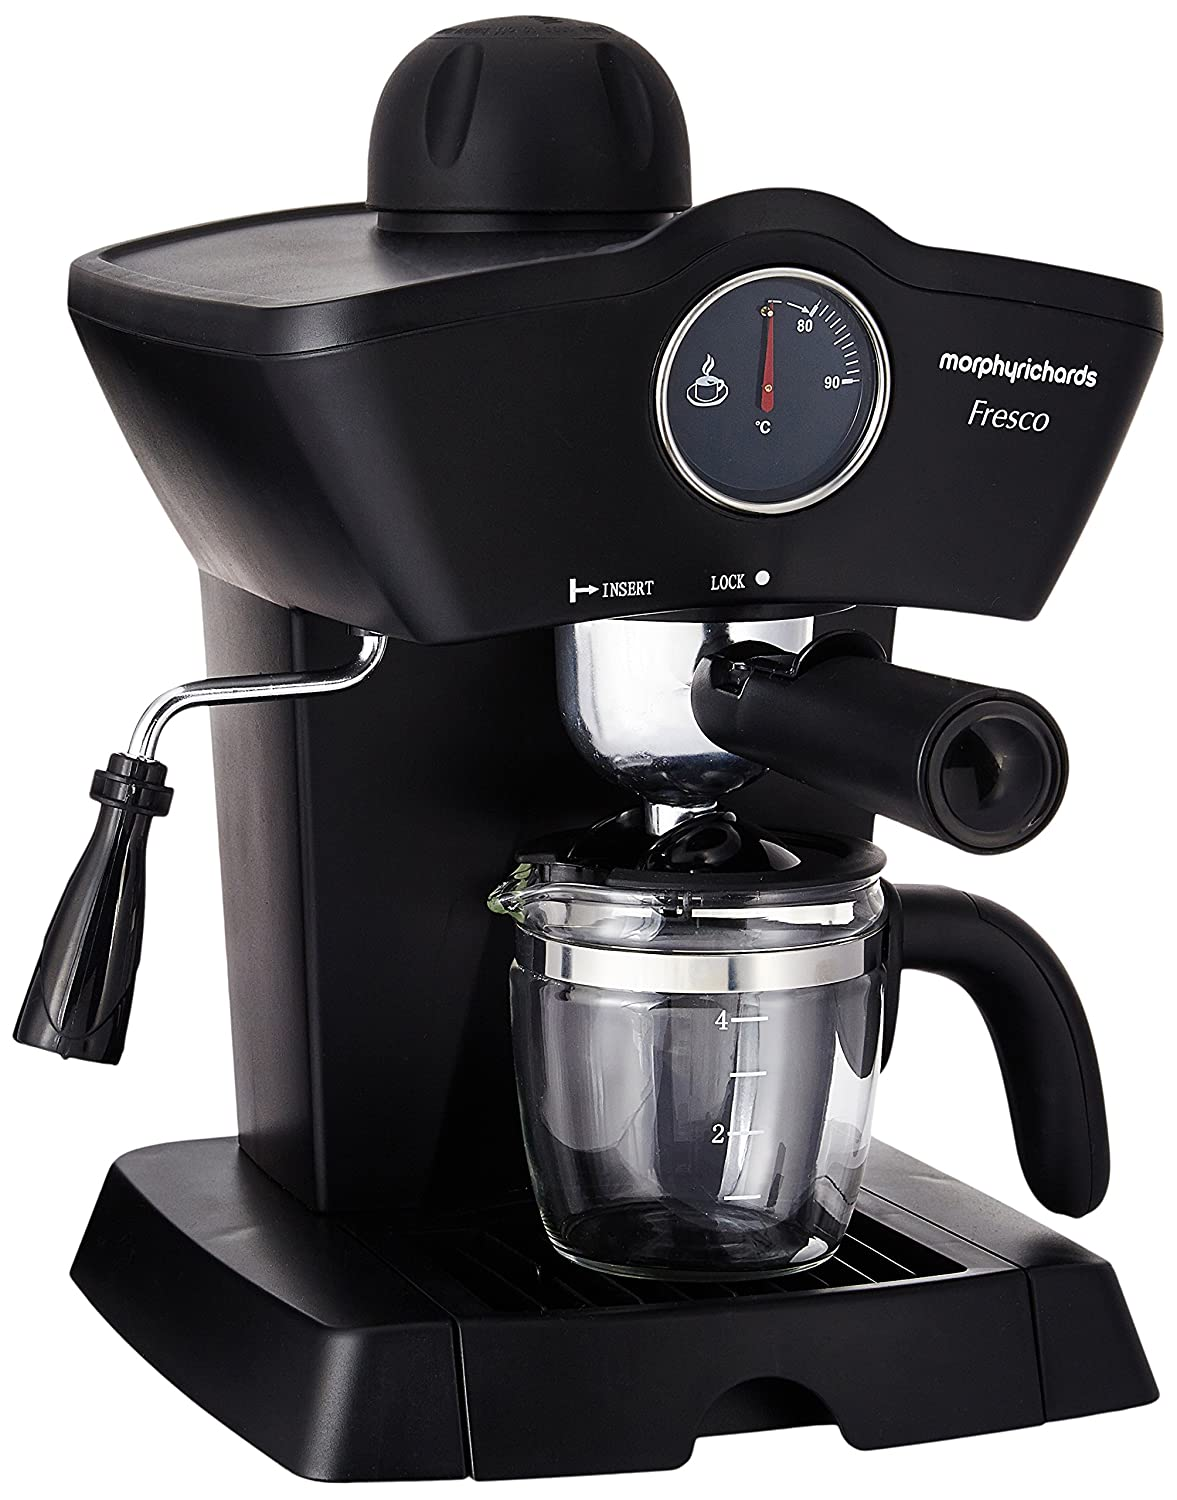 Best Home Espresso Machines for Home Use in India